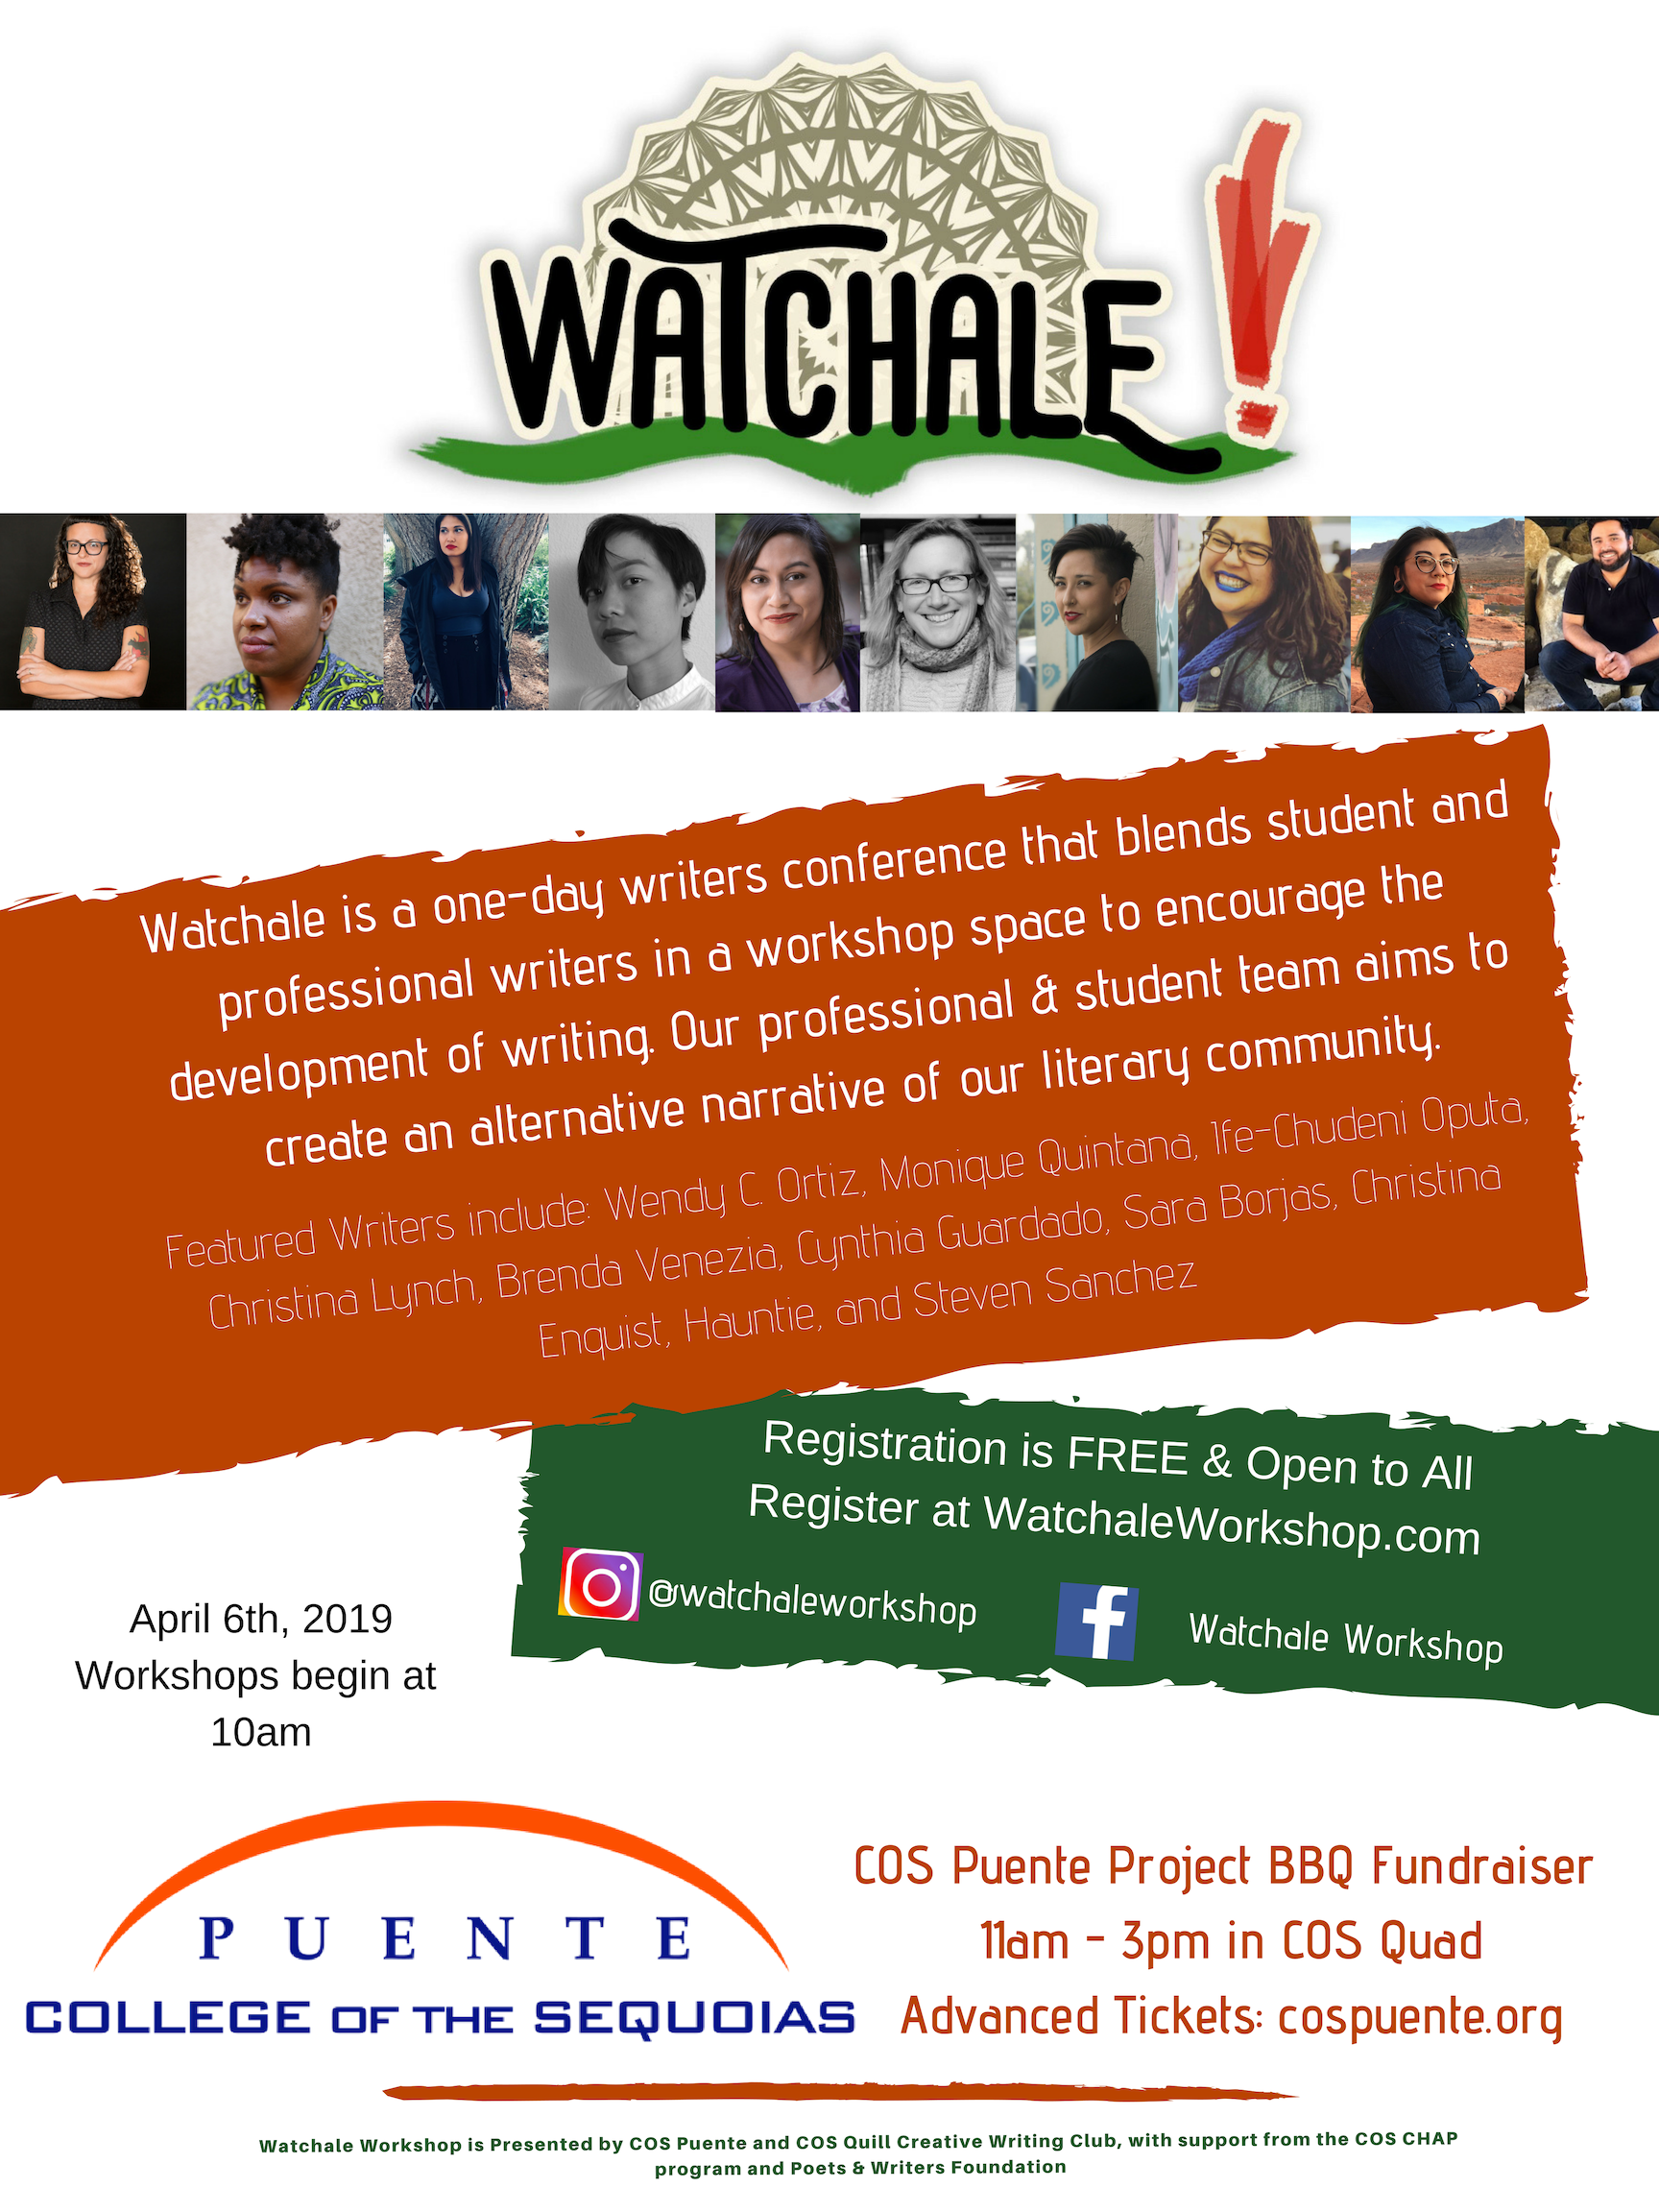 Flier for the Watchale Workshop conference at College of the Sequoias by Jamie Moore